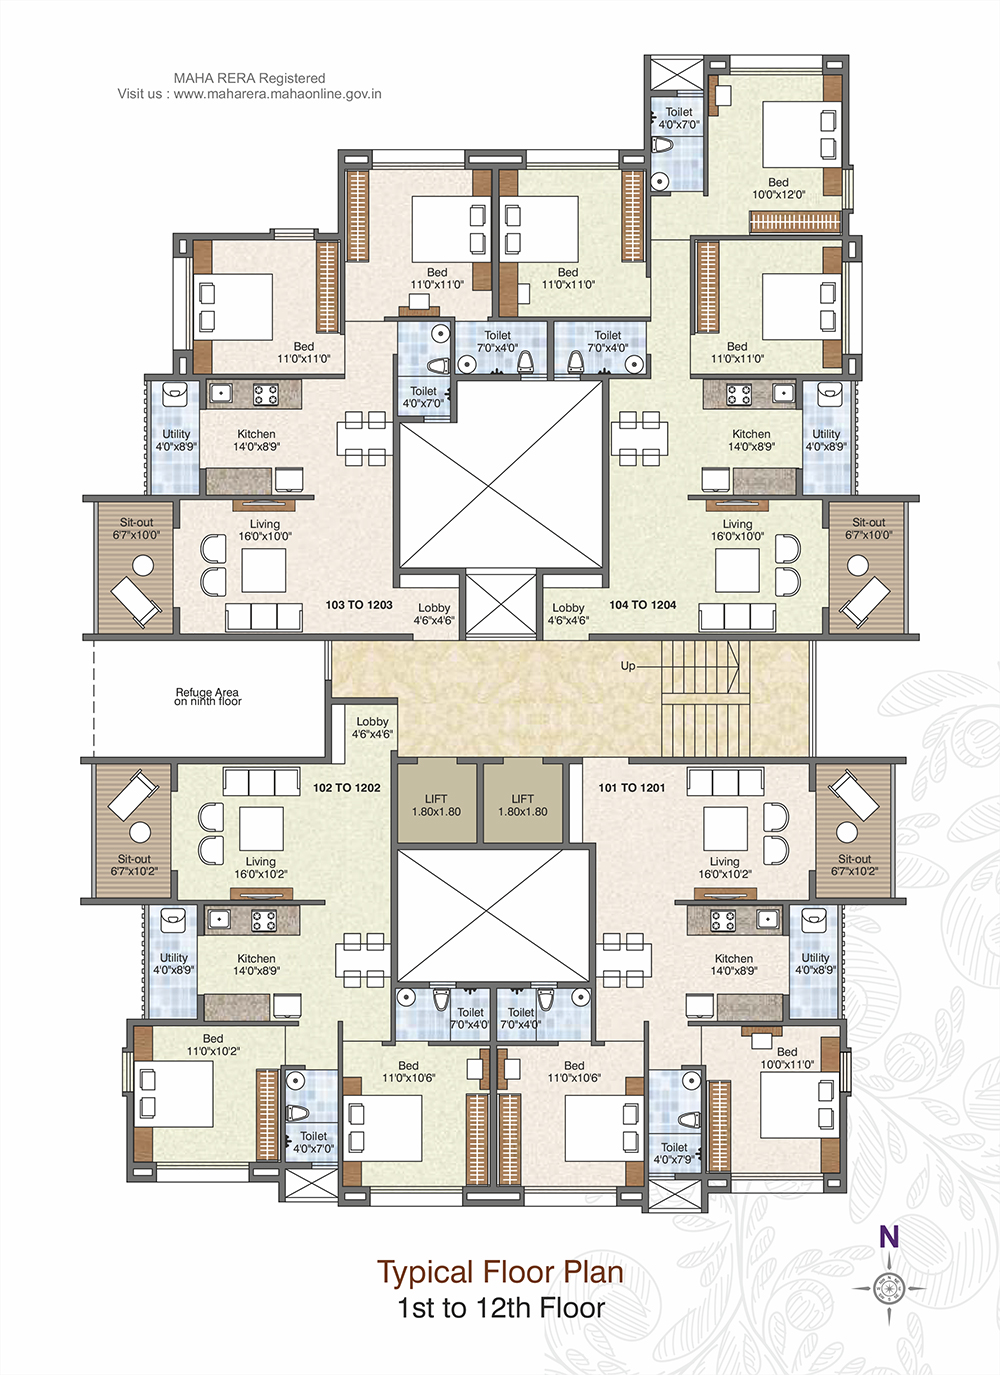 1 to 12th Floor Plan